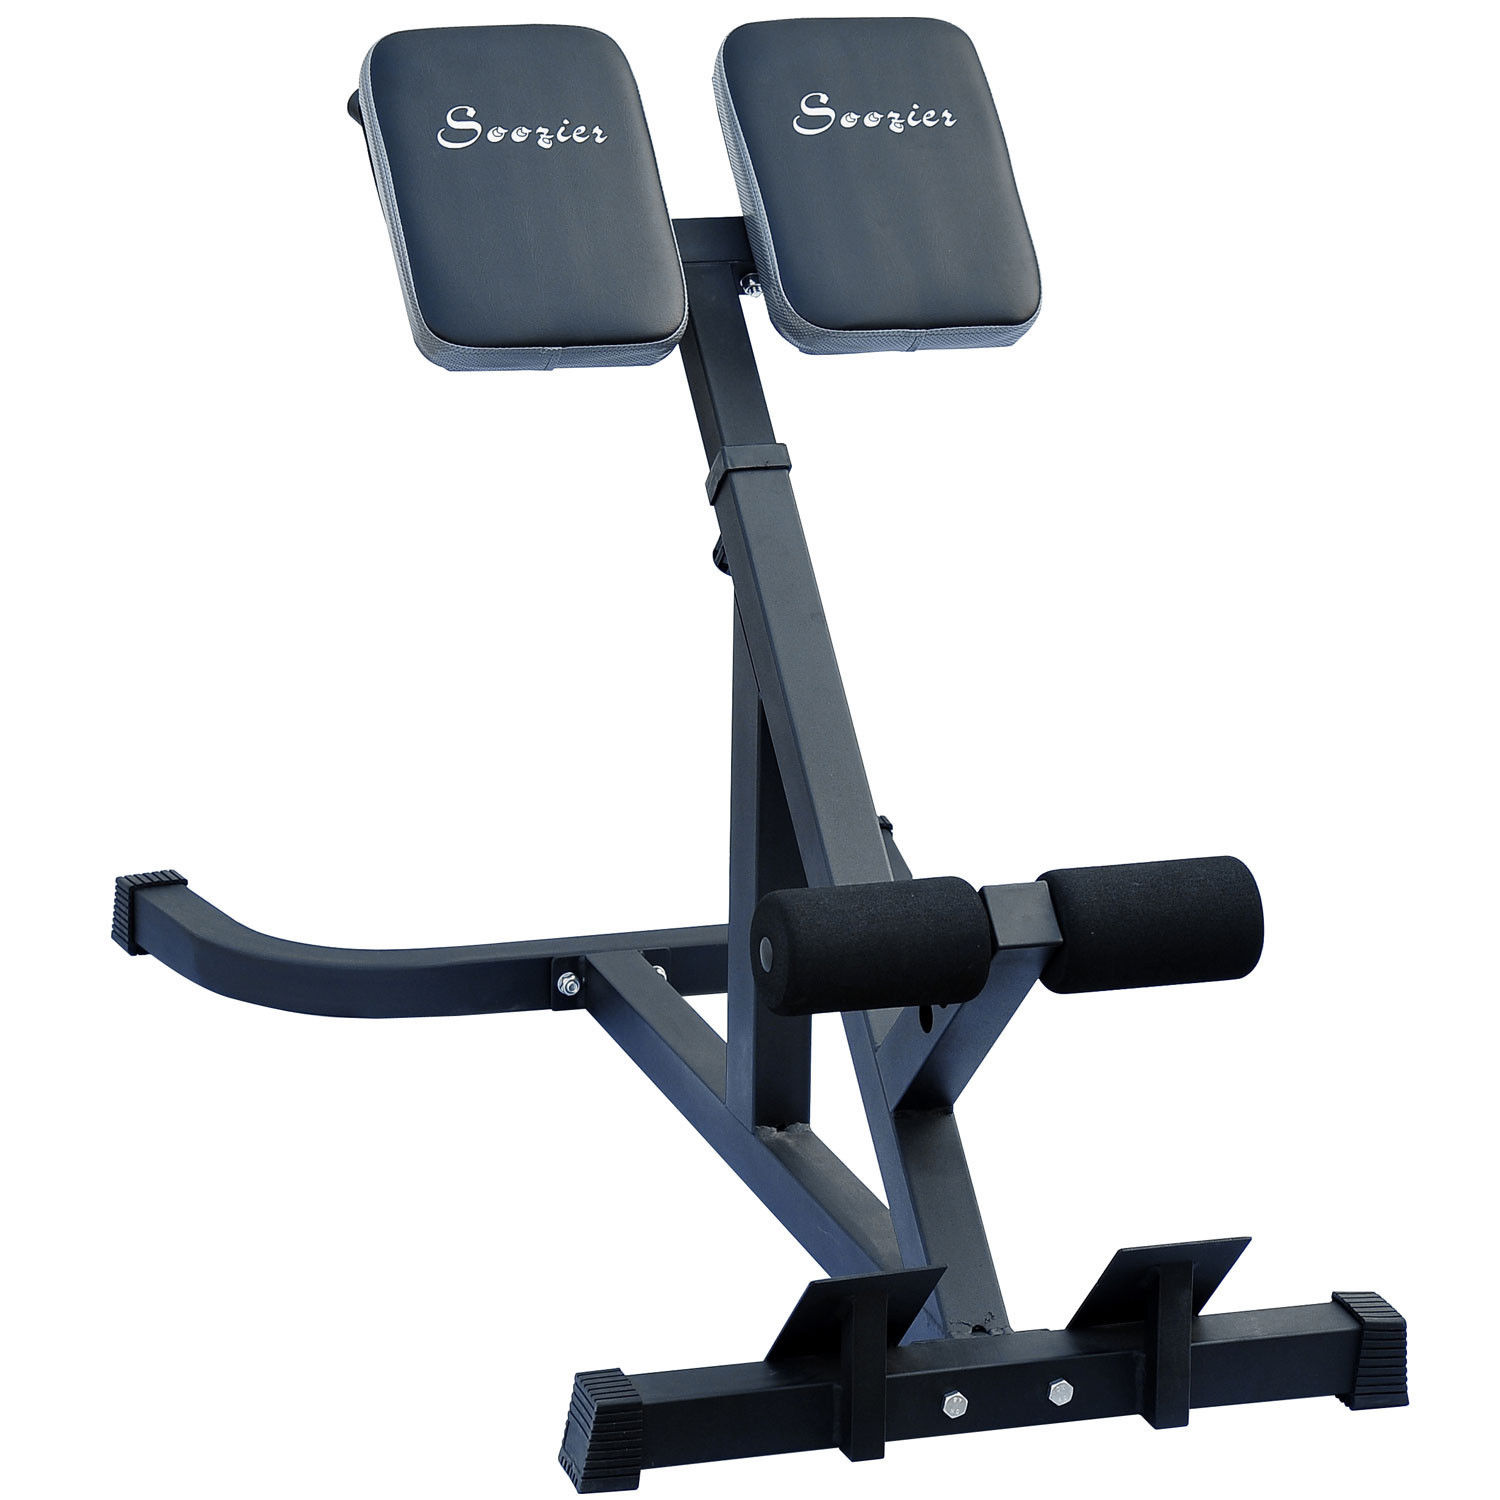 New 45 degree Hyperextension AB bench Roman Chair Exercise